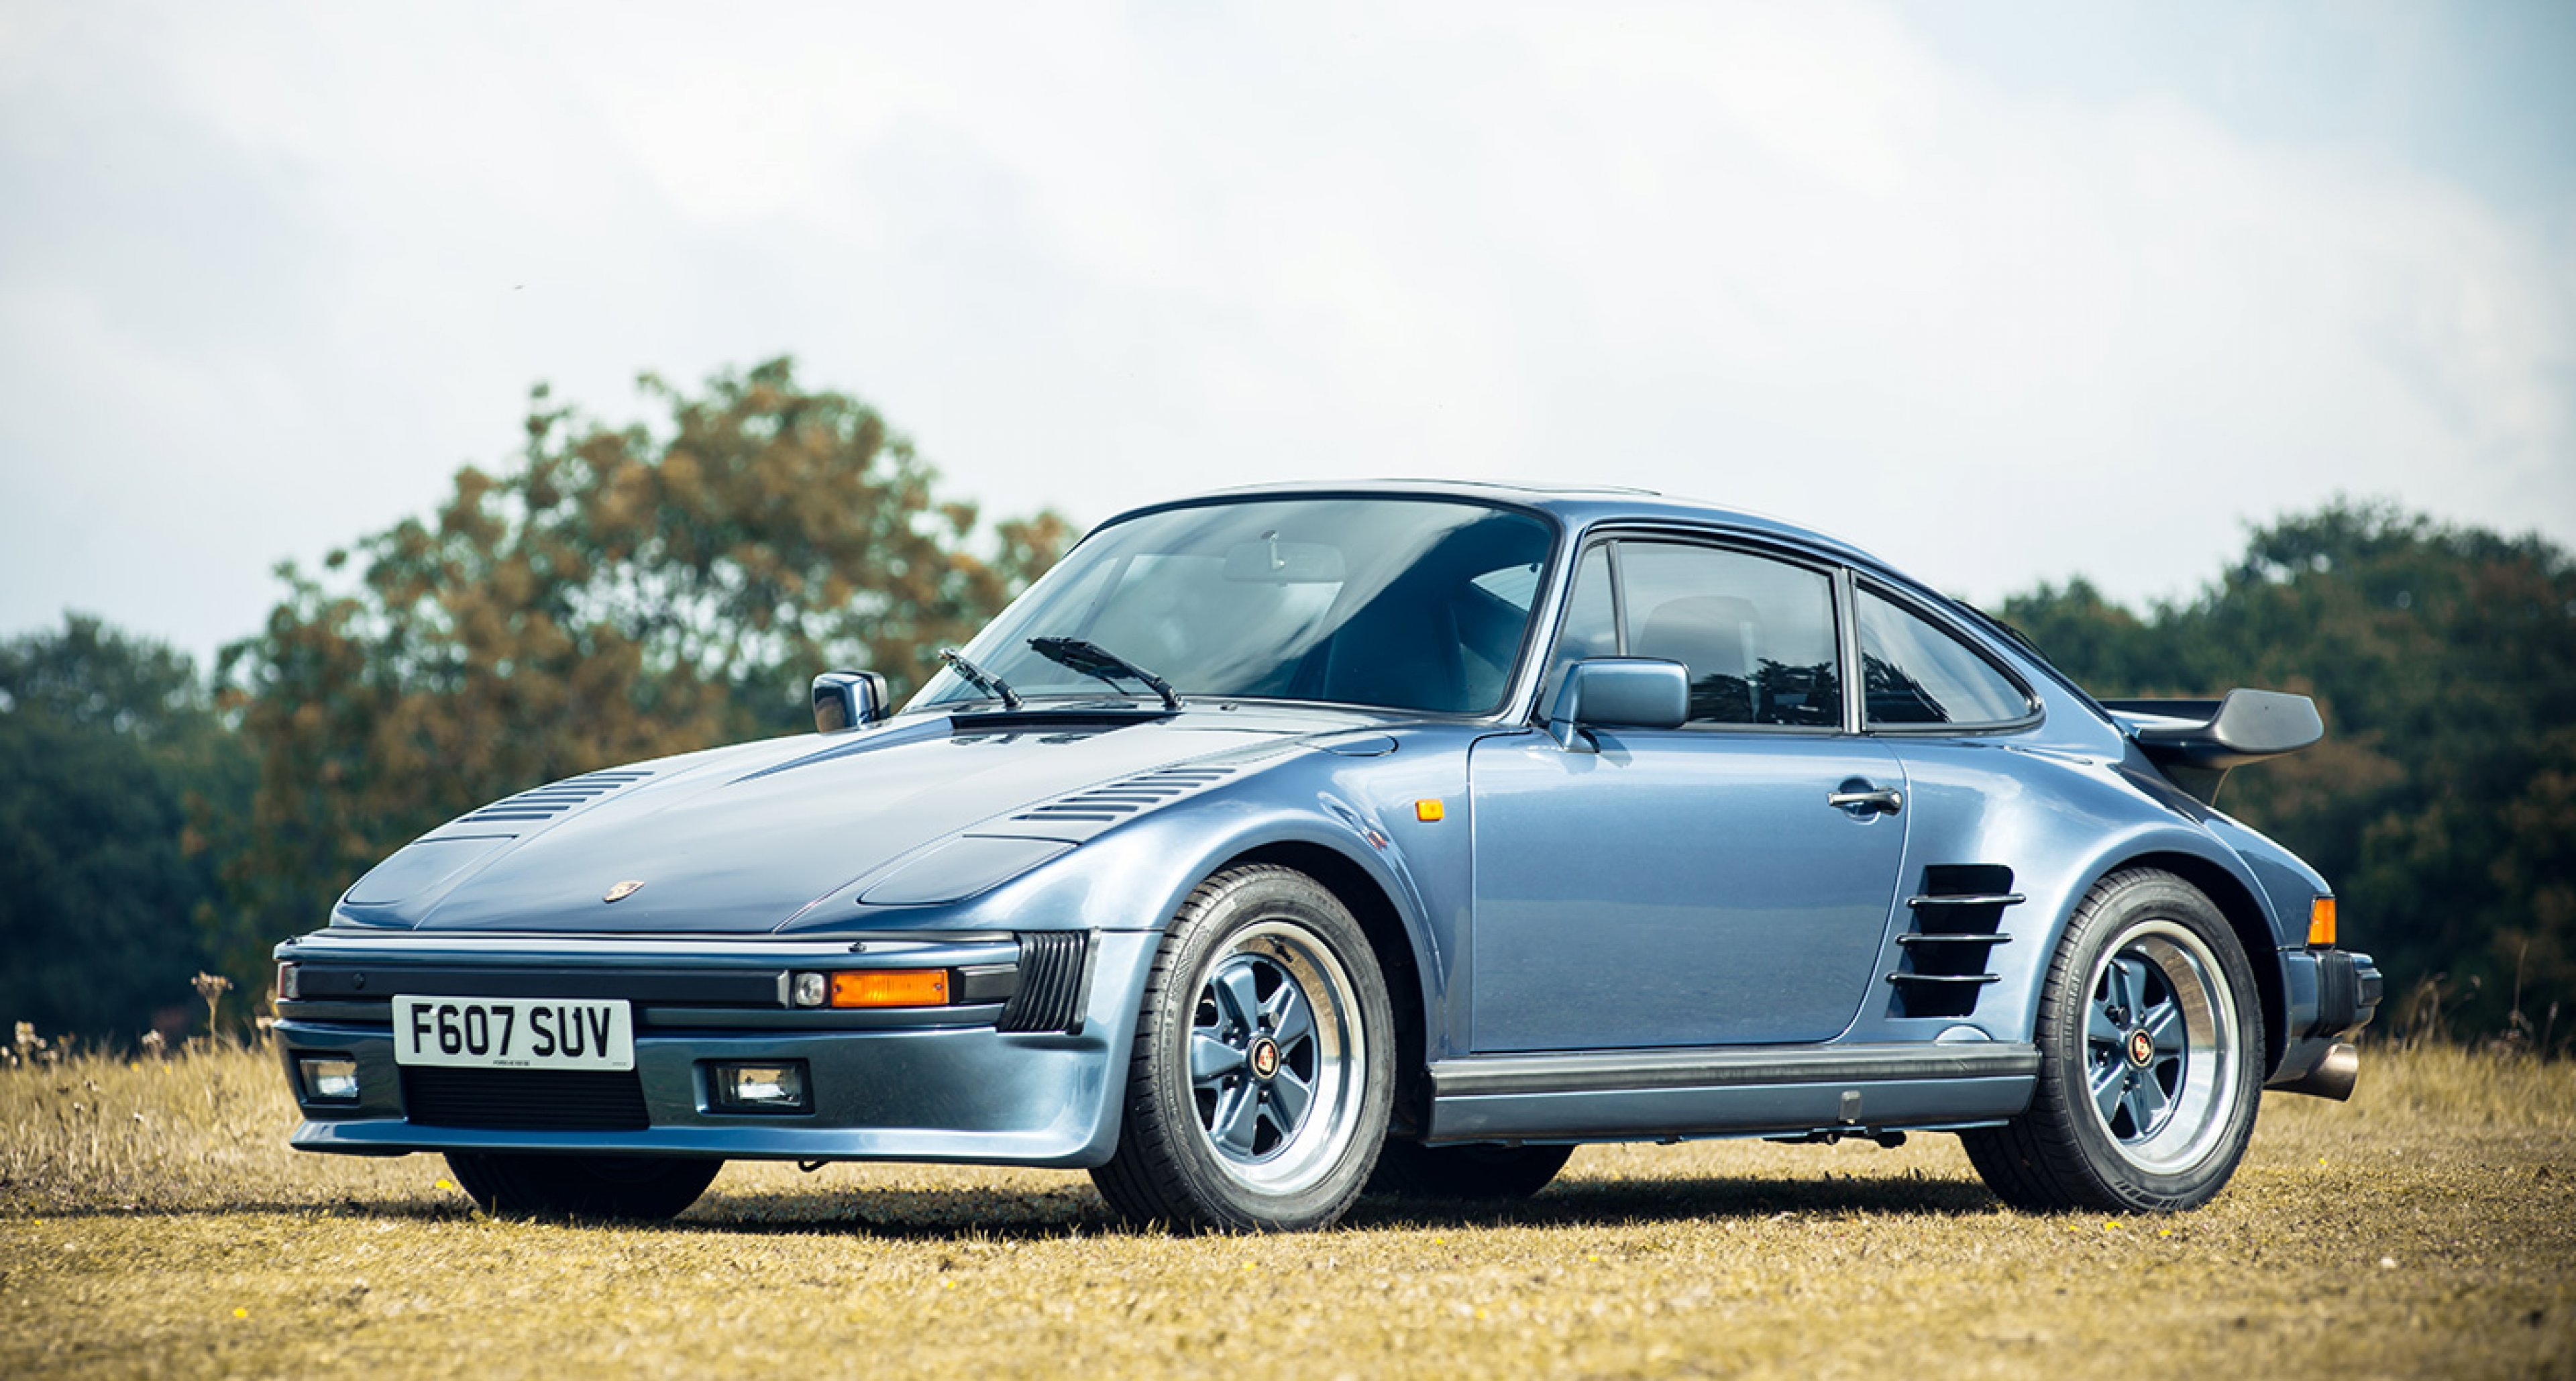 The First And Last Rhd Porsche 911 Turbo Flatnoses To Be Sold At Silverstone Classic Driver Magazine